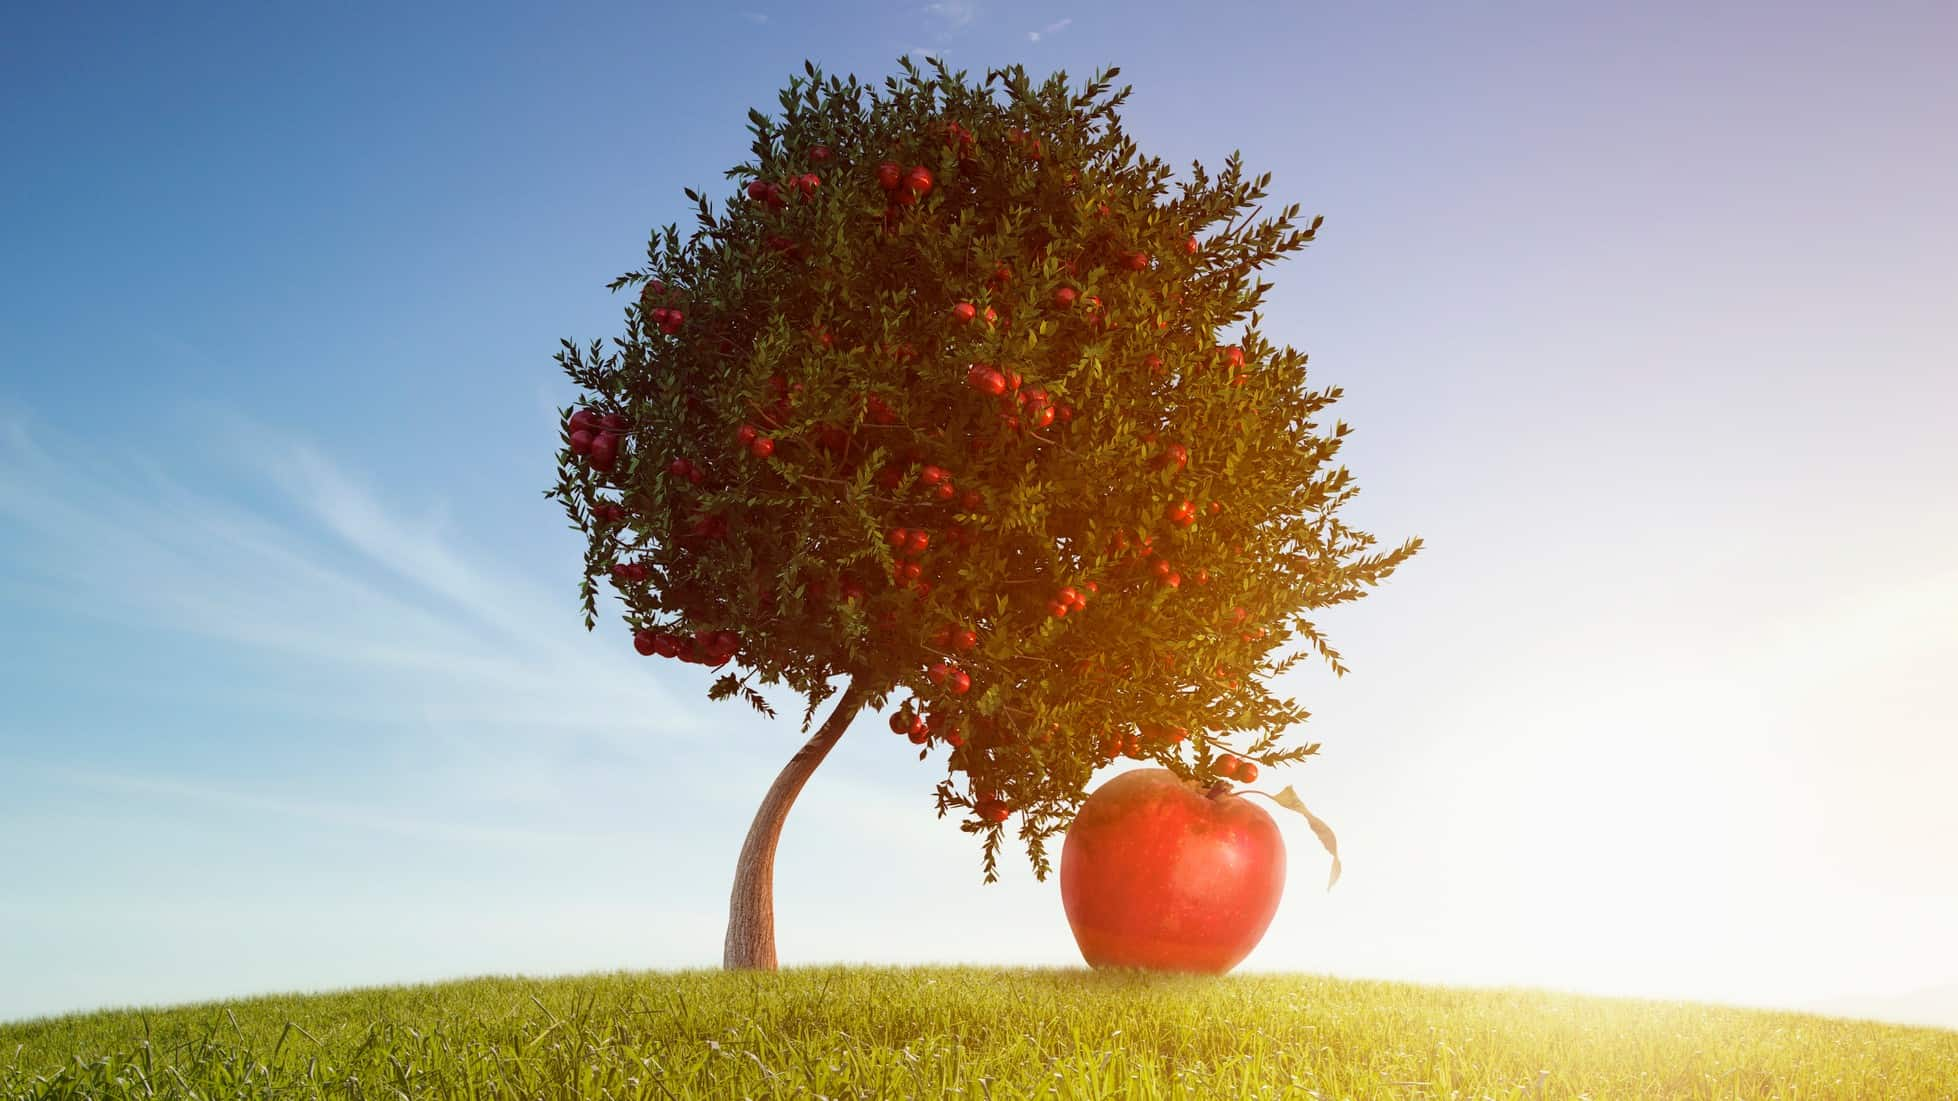 ASX share price represented by giant apple having fallen from an apple tree